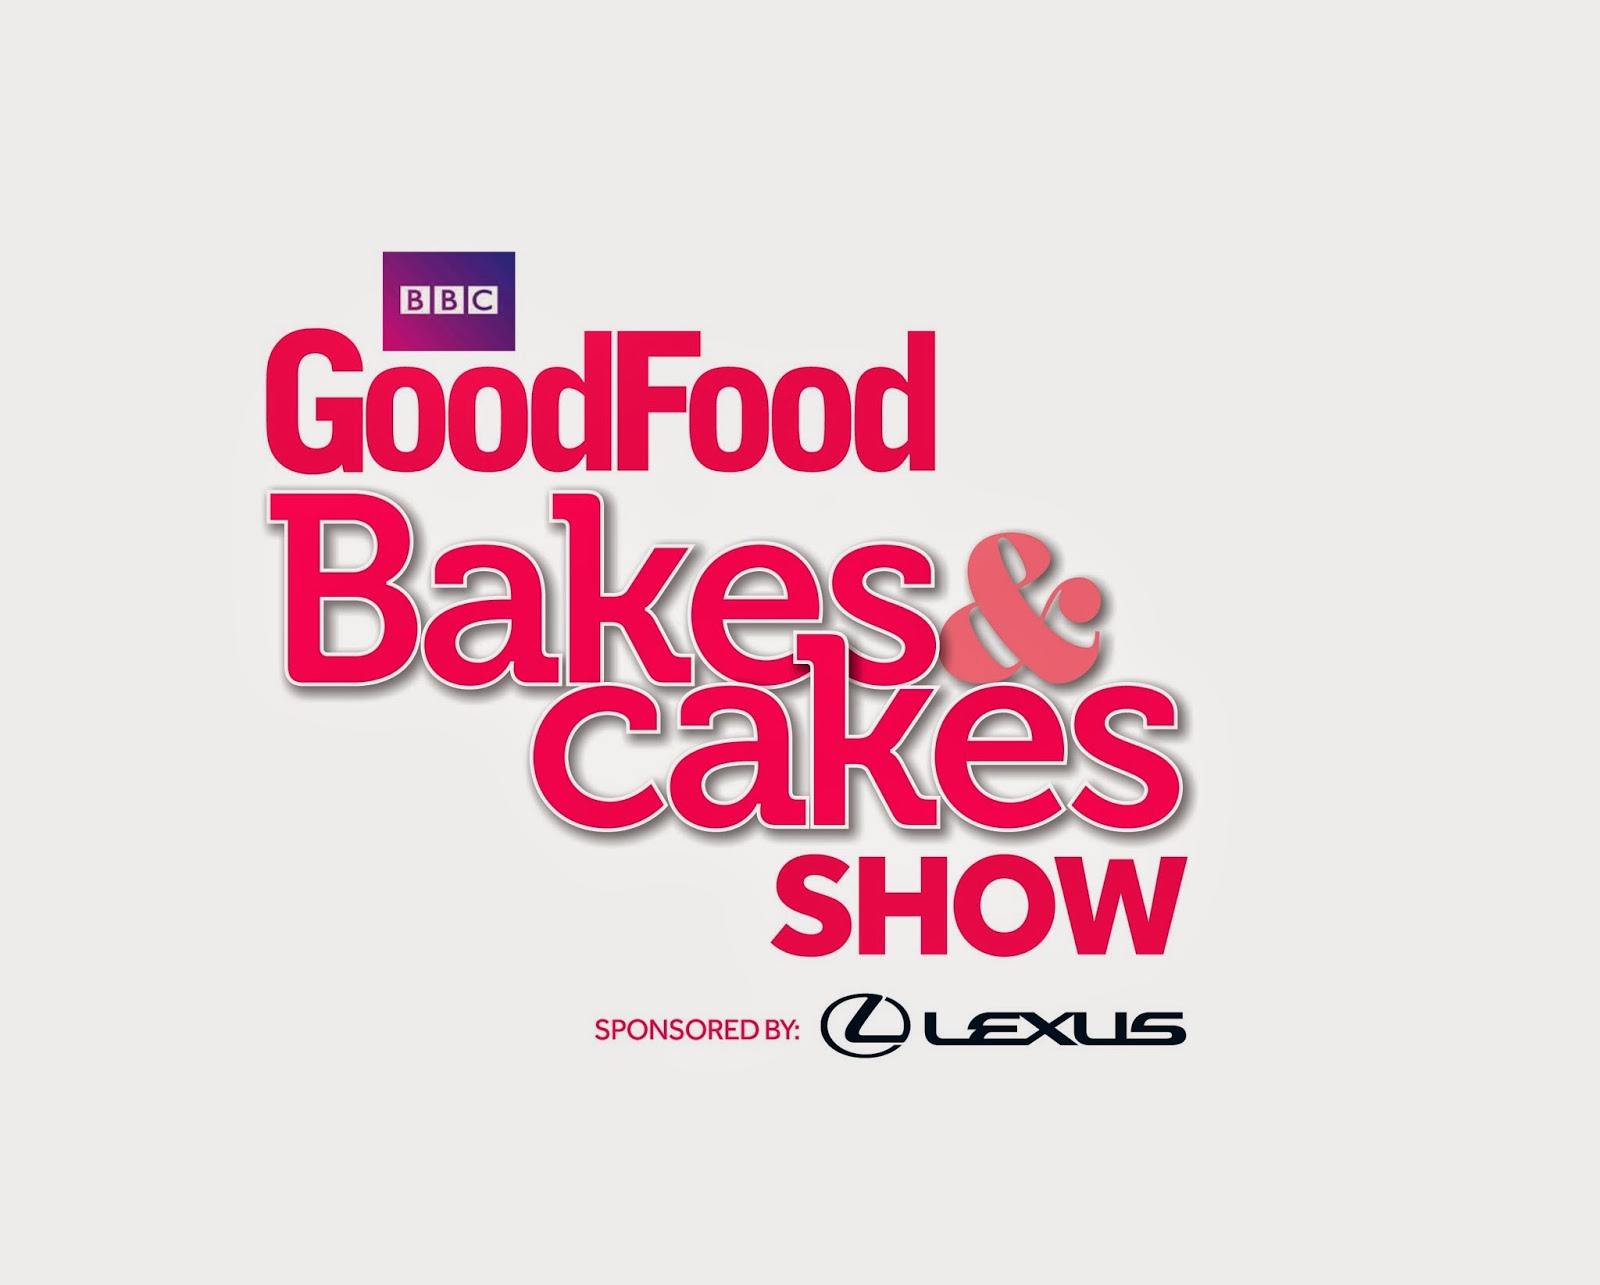 BBC Good Food Show Disocunt Code Promotion Bake and Cakes